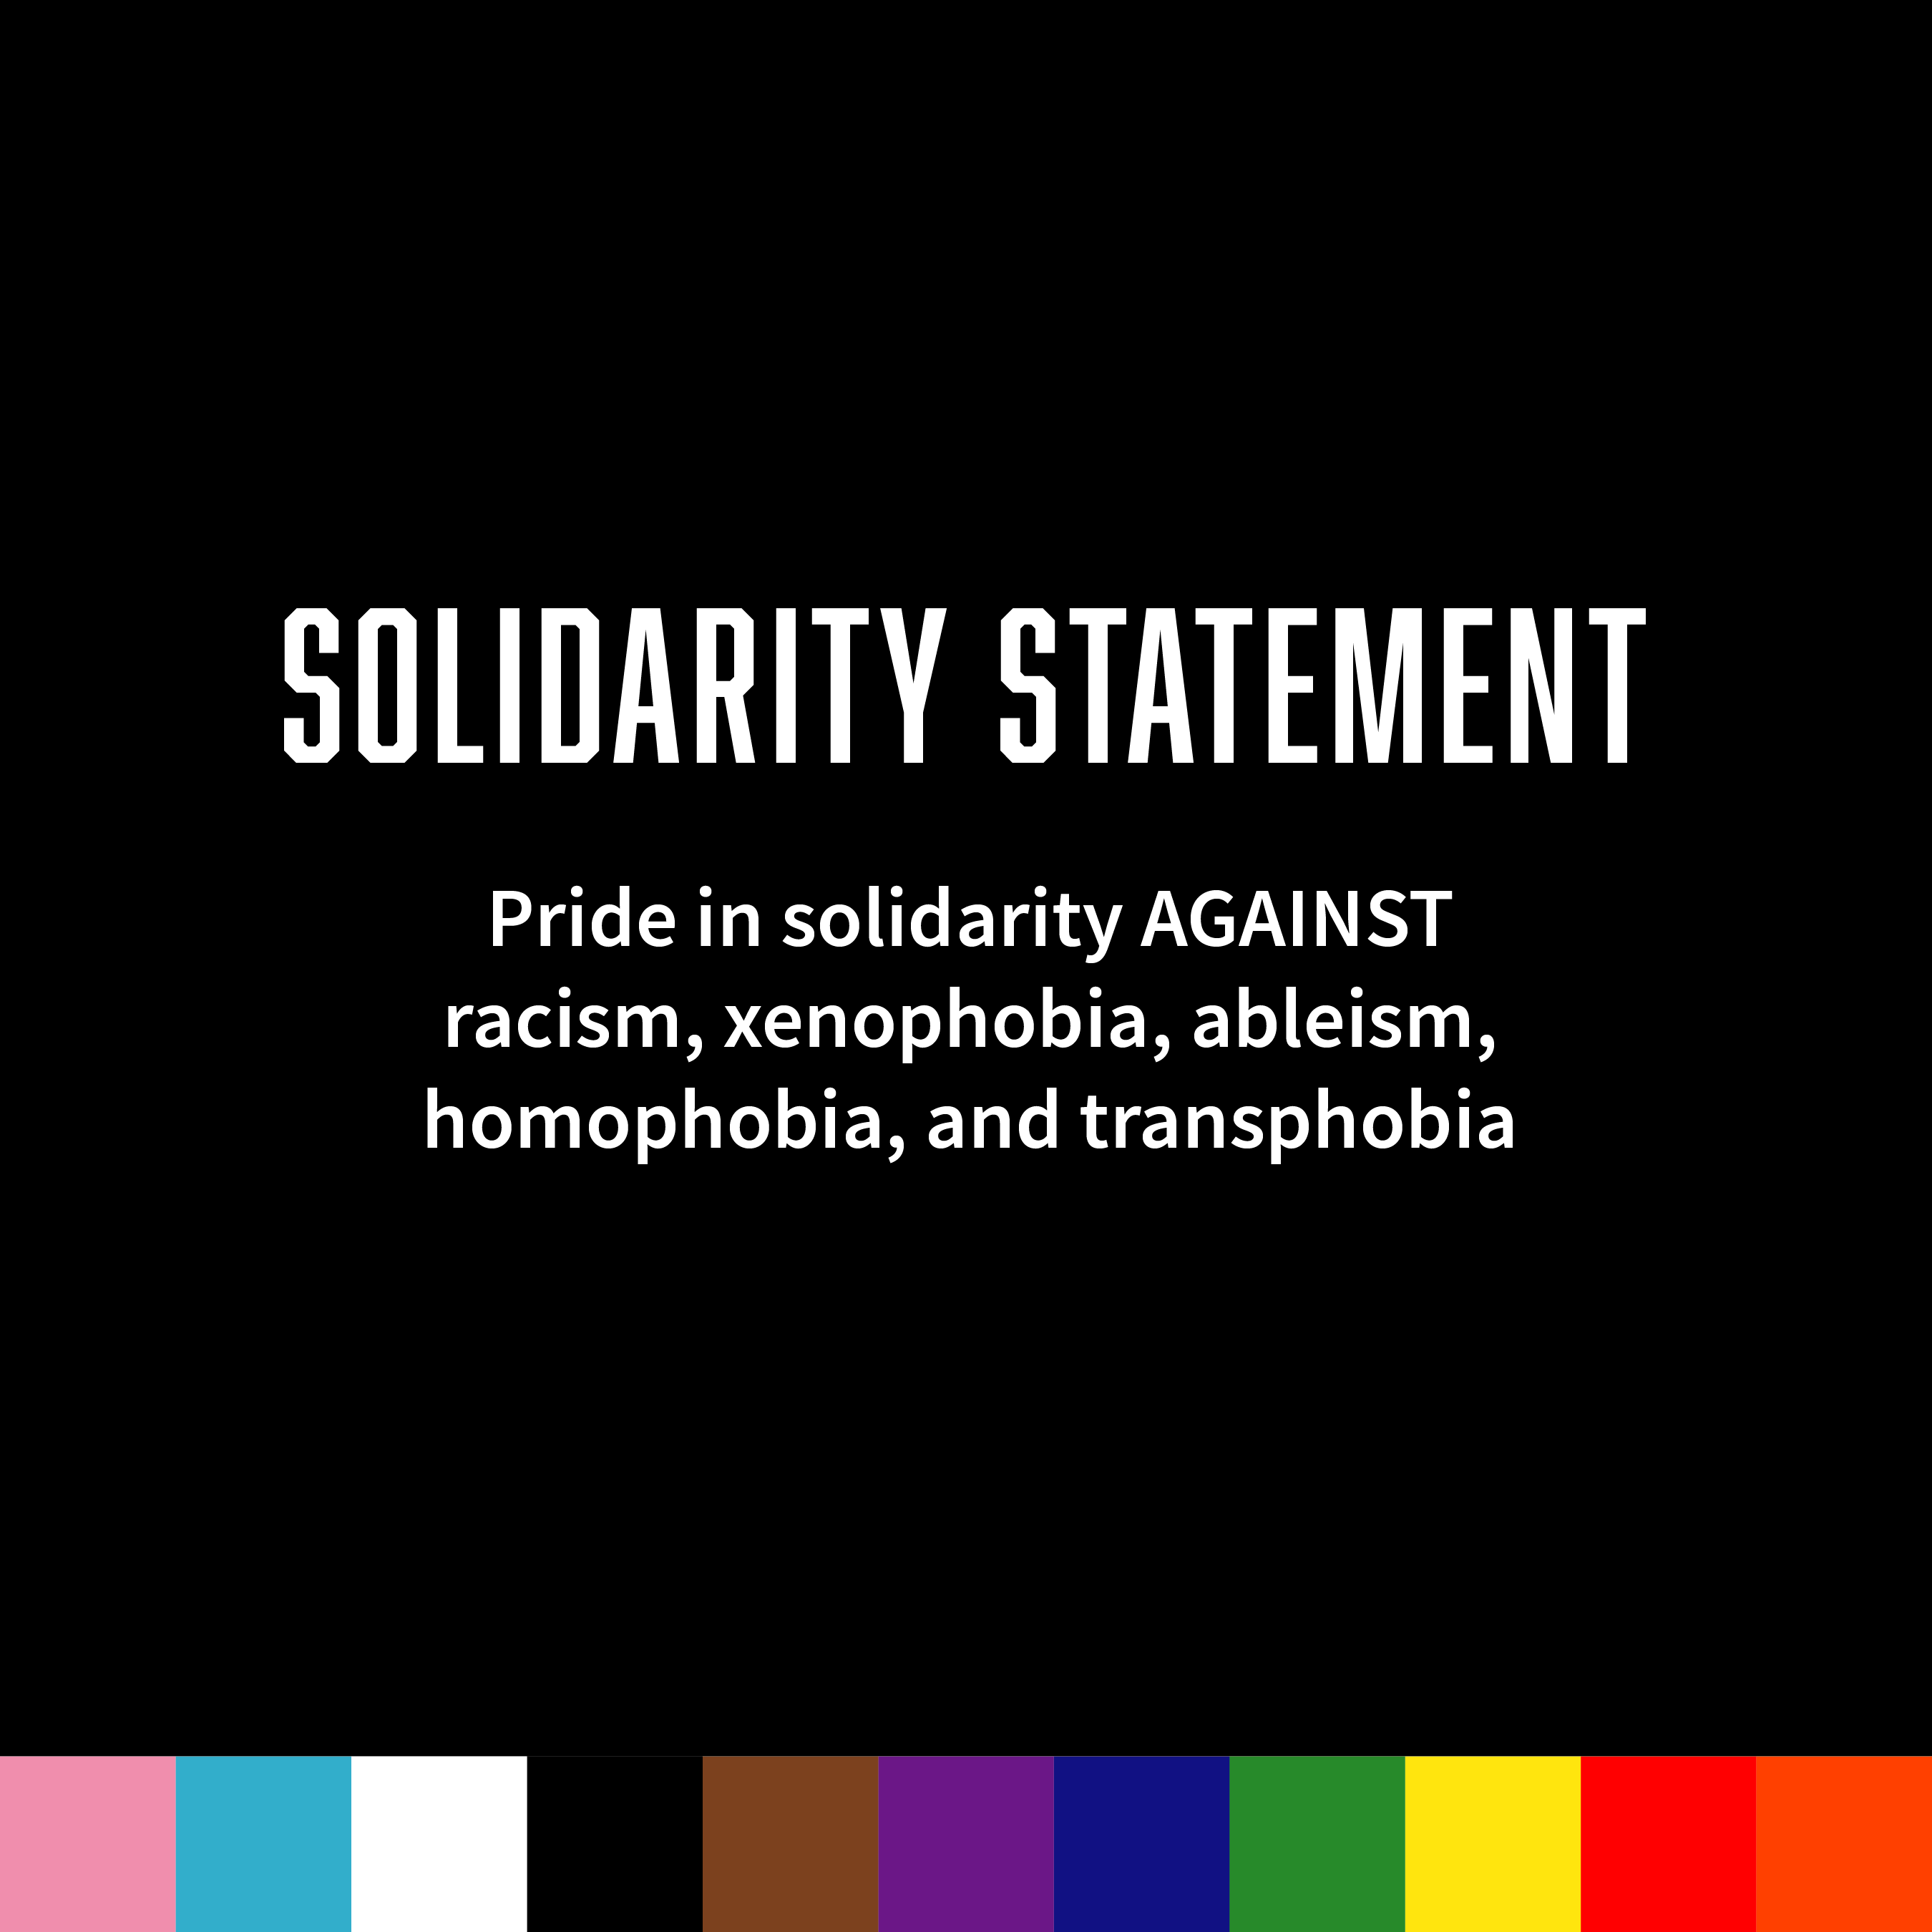 Webpage tab for solidarity statement against racism, xenophobia, ableism, homophobia, and transphobia